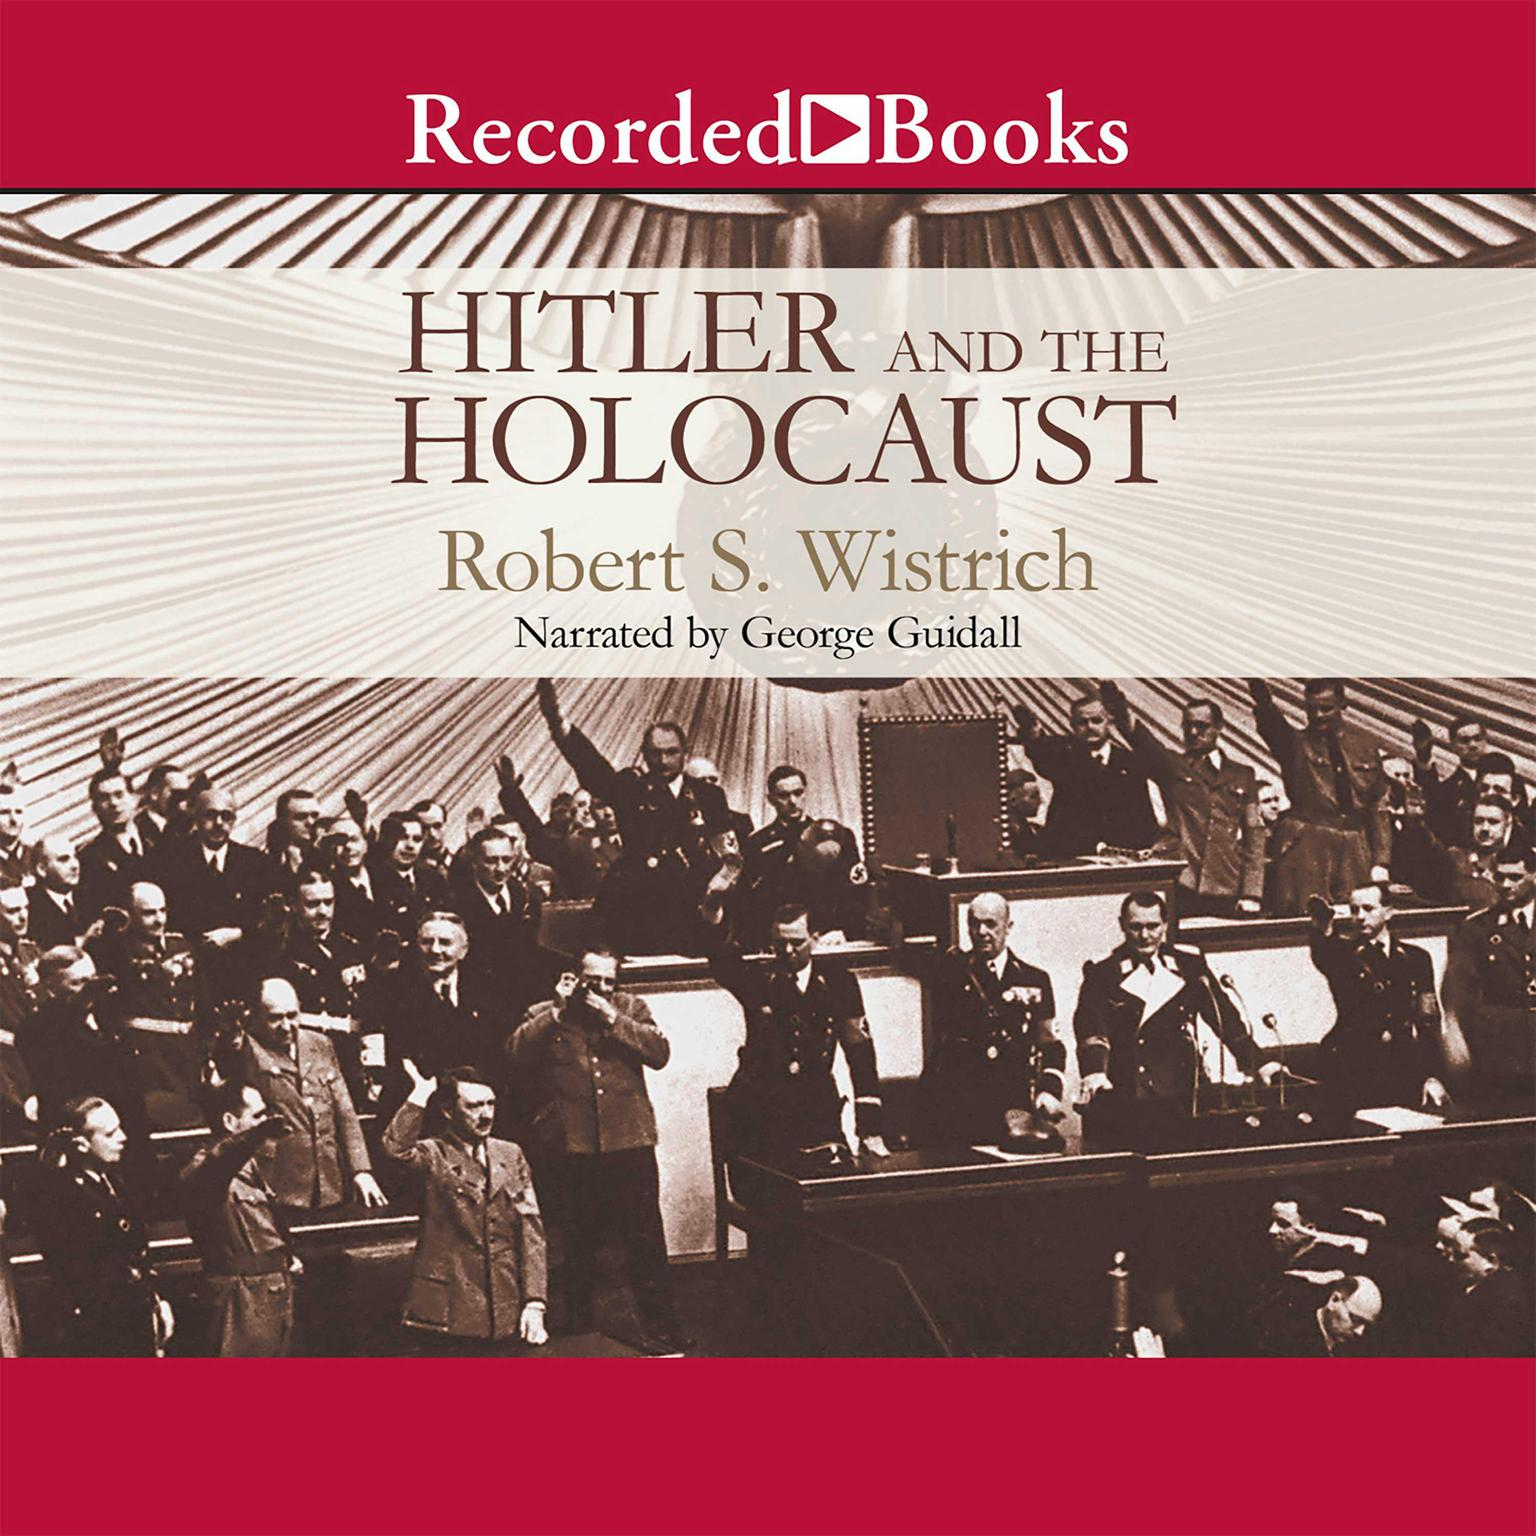 Robert wistrich hitler and the holocaust essay.doc